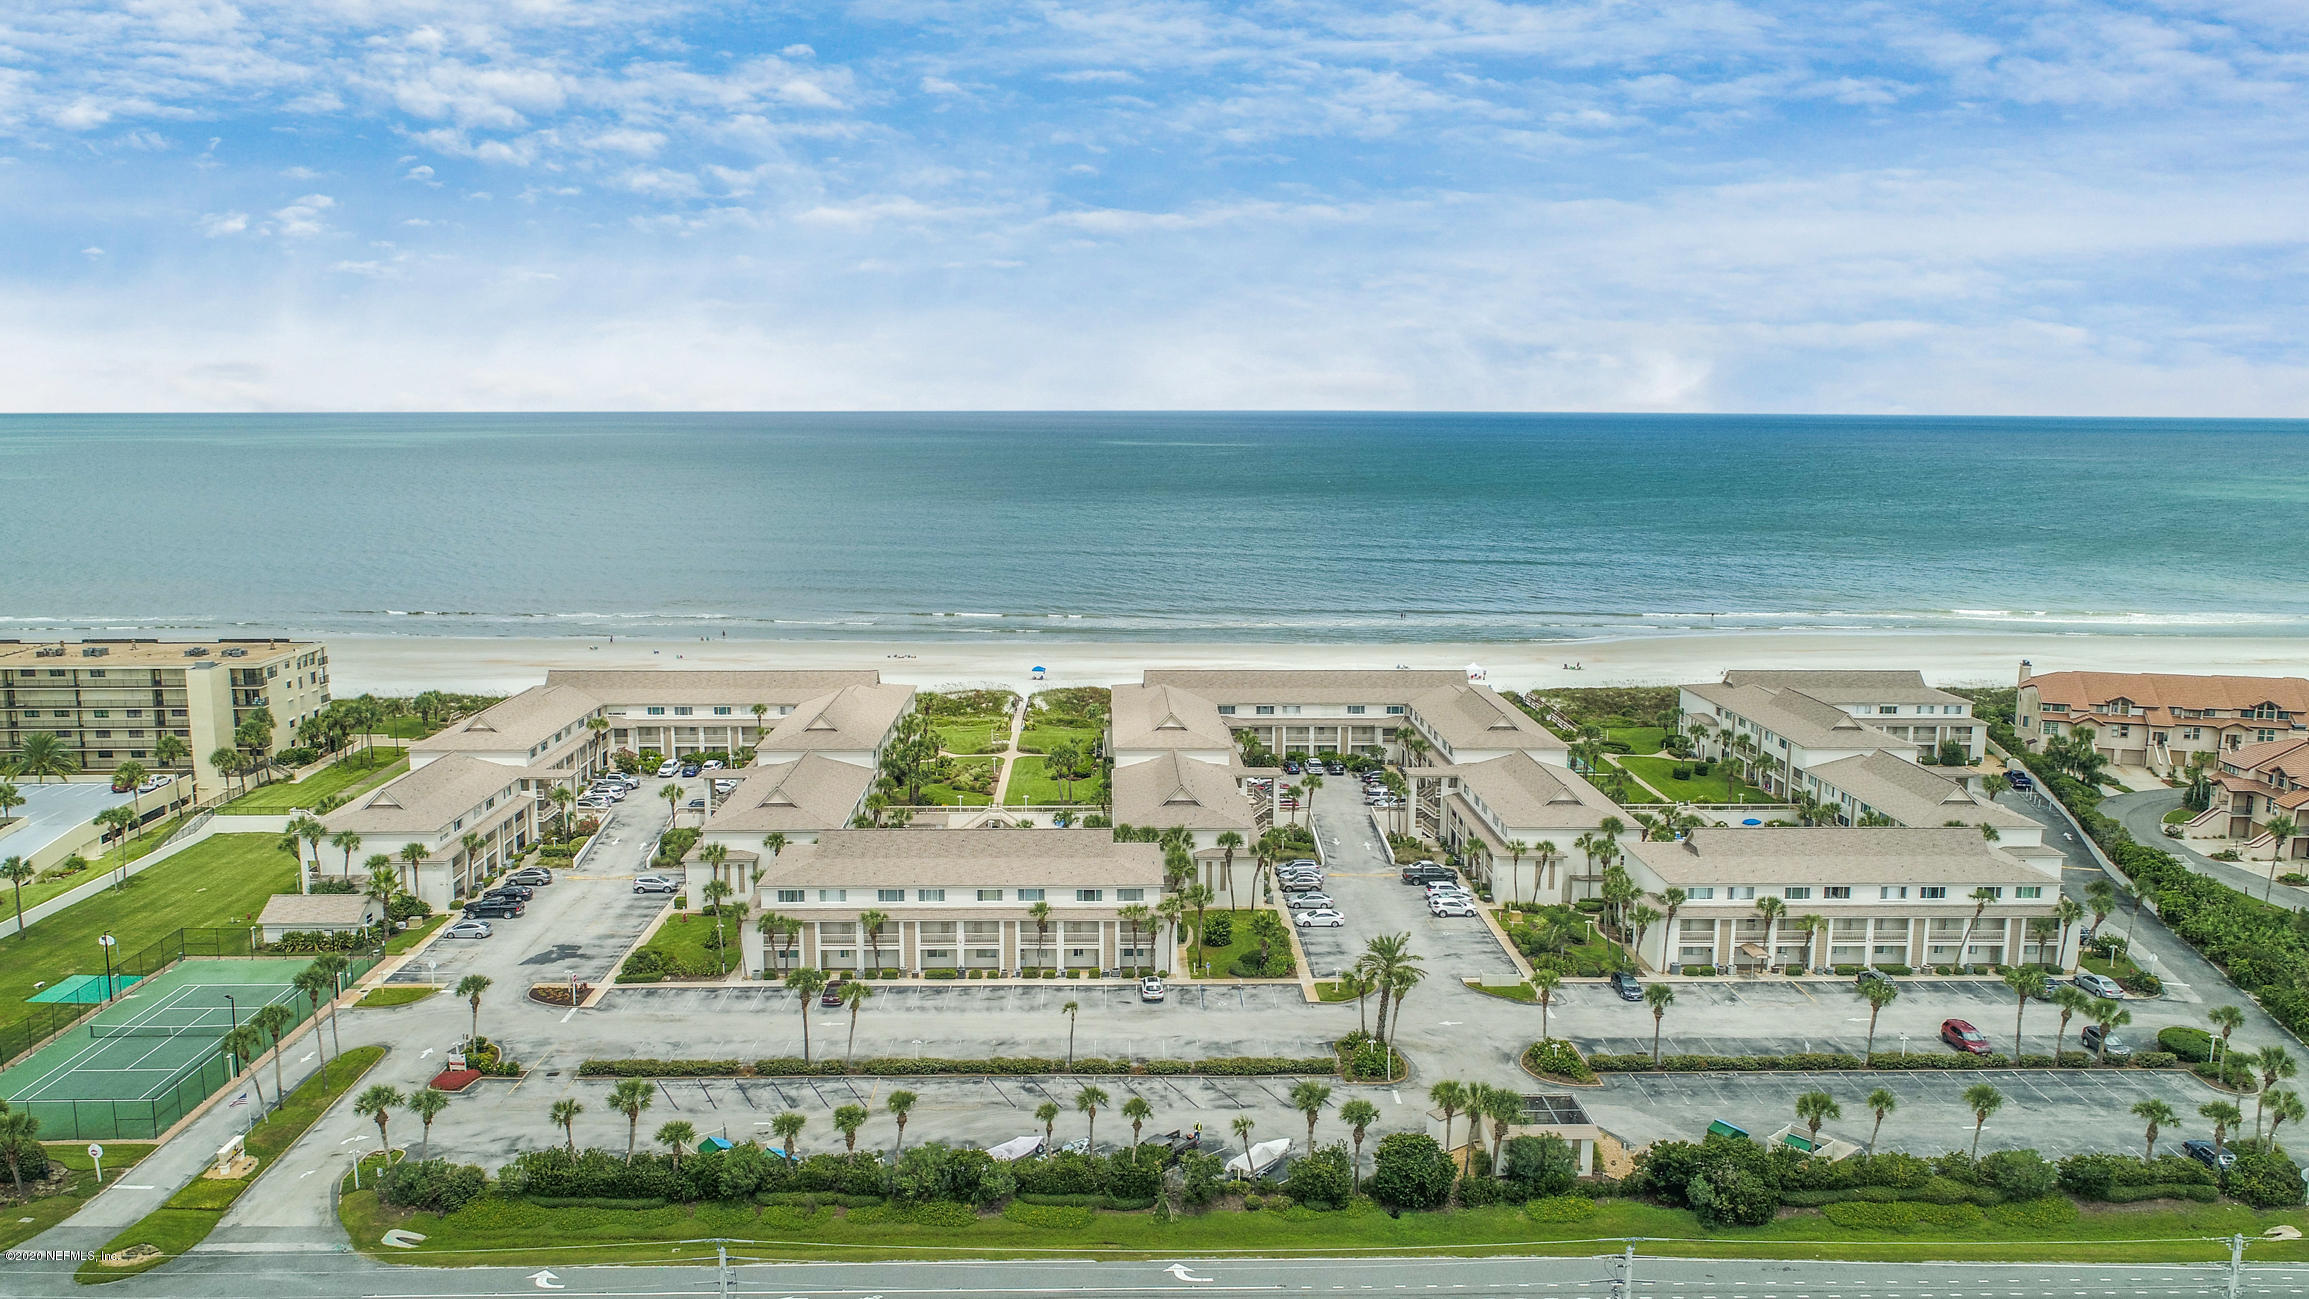 8130 A1A, ST AUGUSTINE, FLORIDA 32080, 2 Bedrooms Bedrooms, ,2 BathroomsBathrooms,Residential,For sale,A1A,1075694